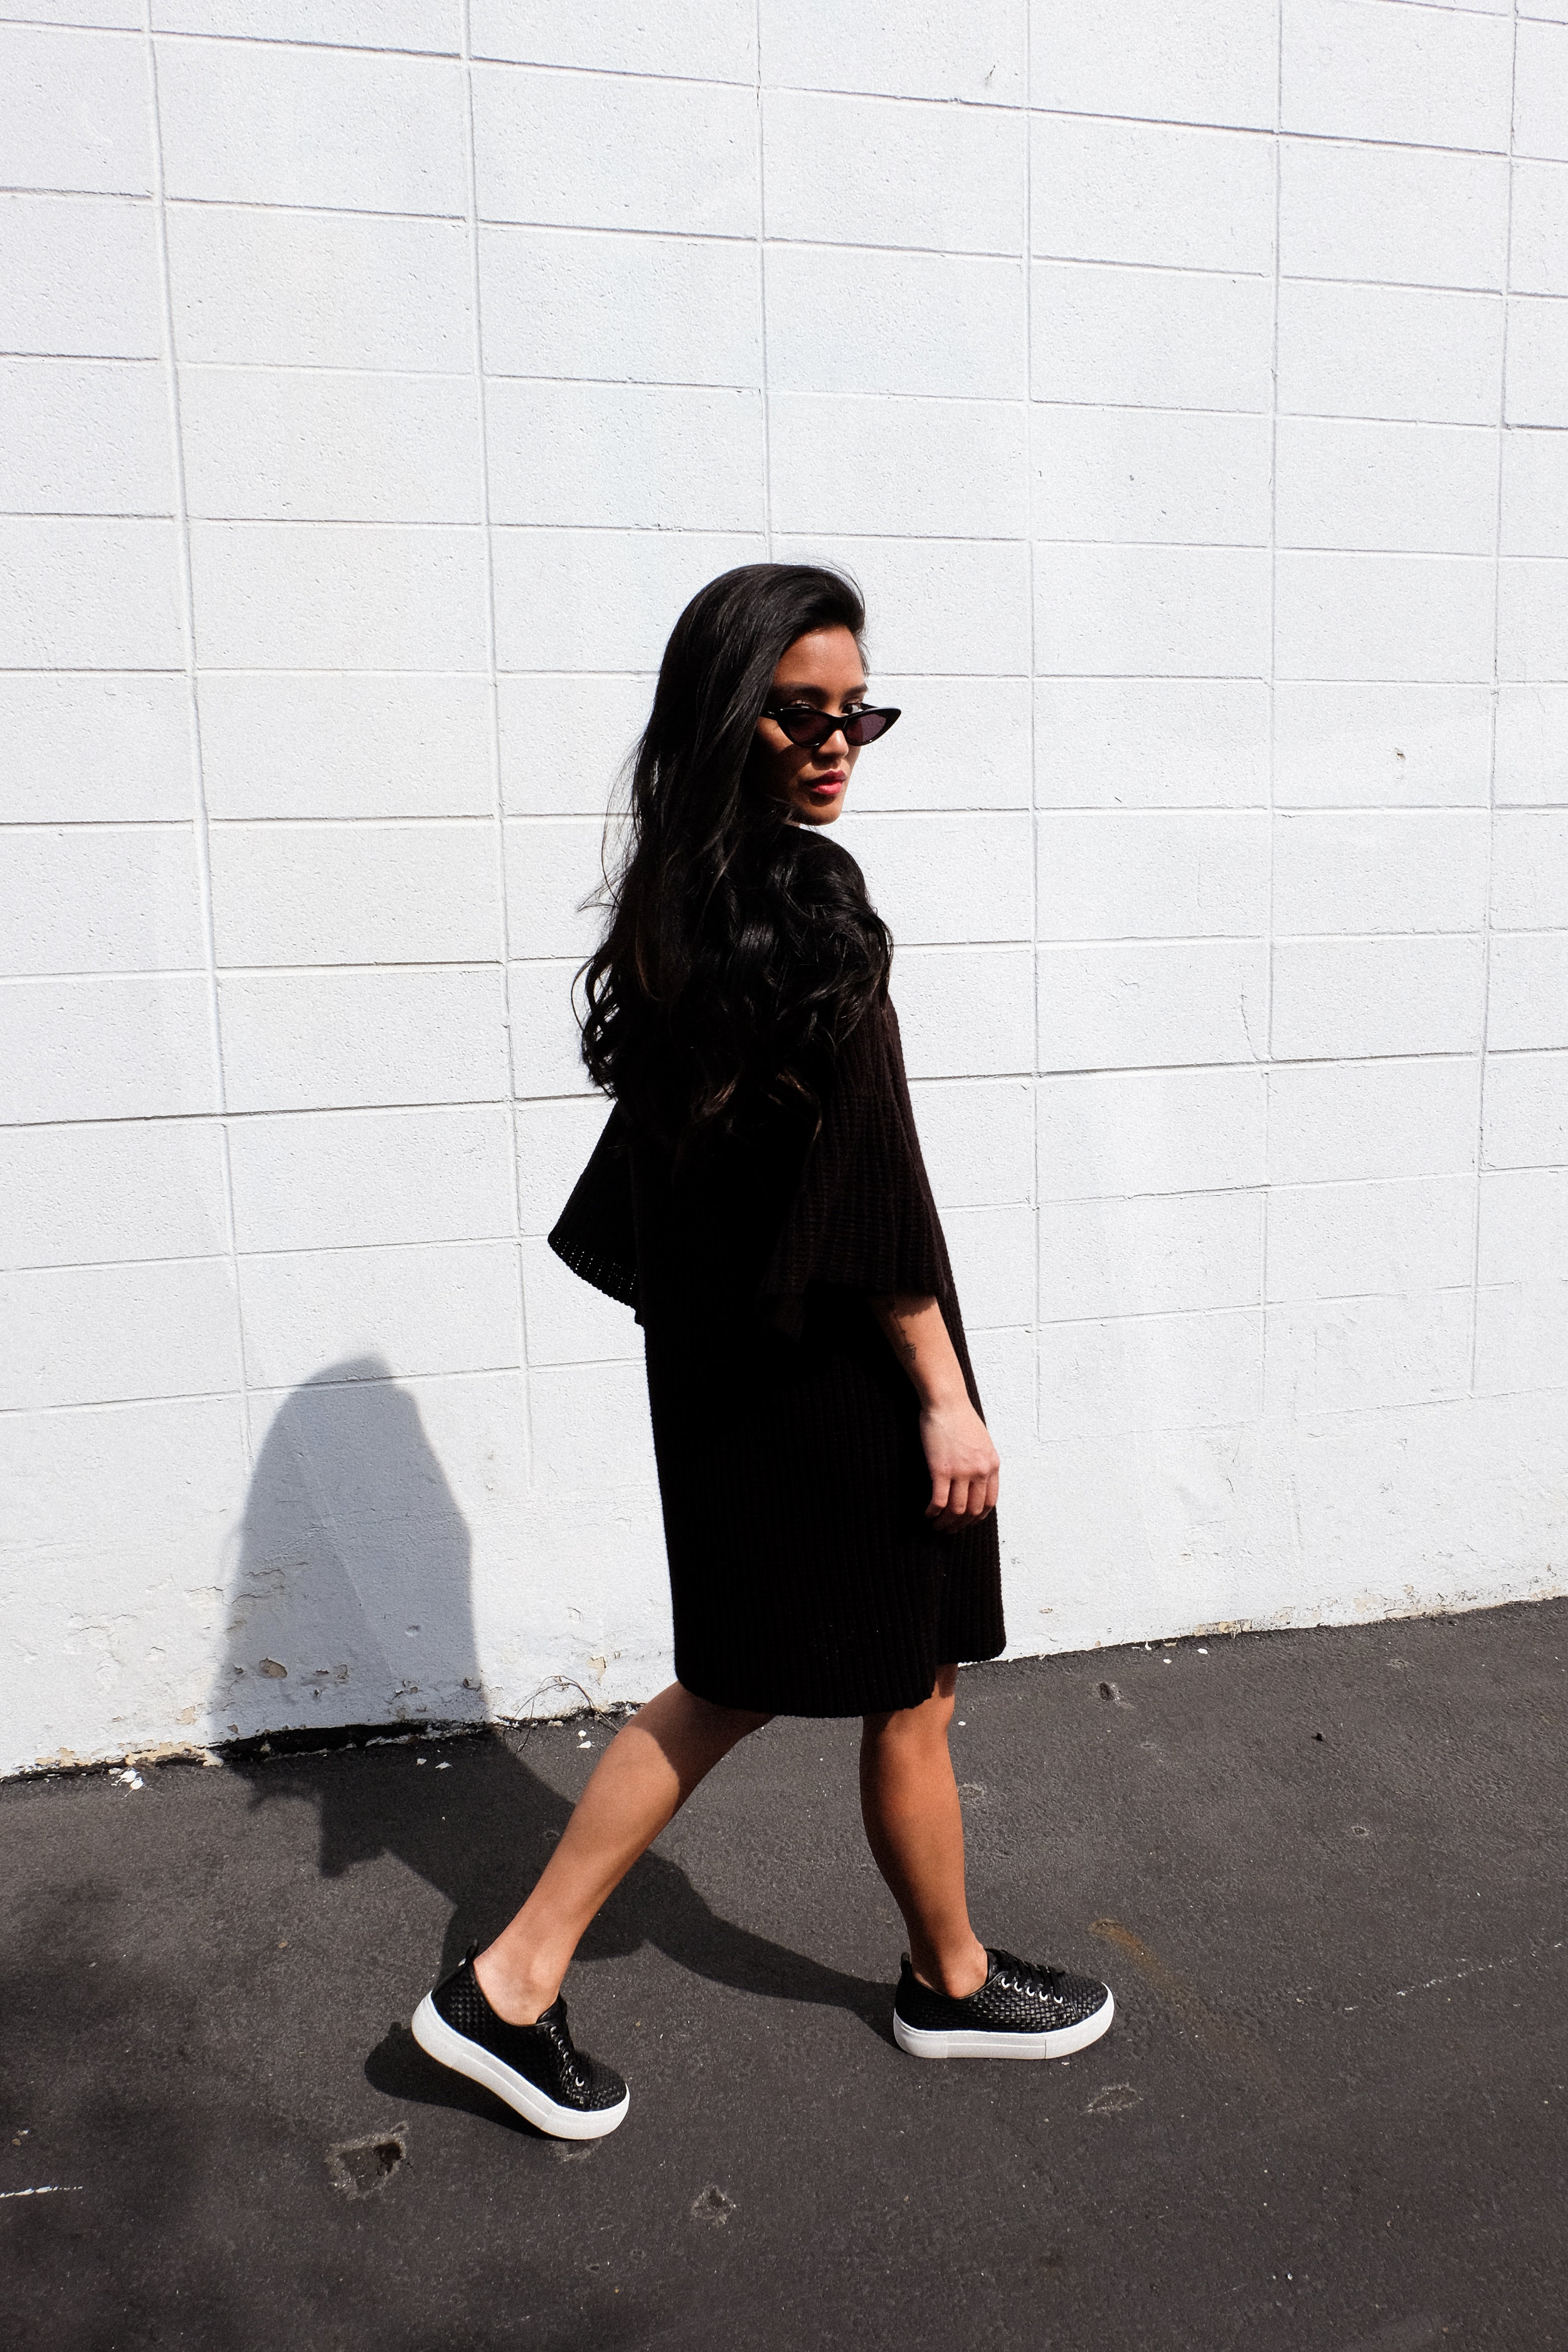 maurie & eve dress  |  jslides sneakers  |  crap eyewear shades  |  photos shot by michael alvarado